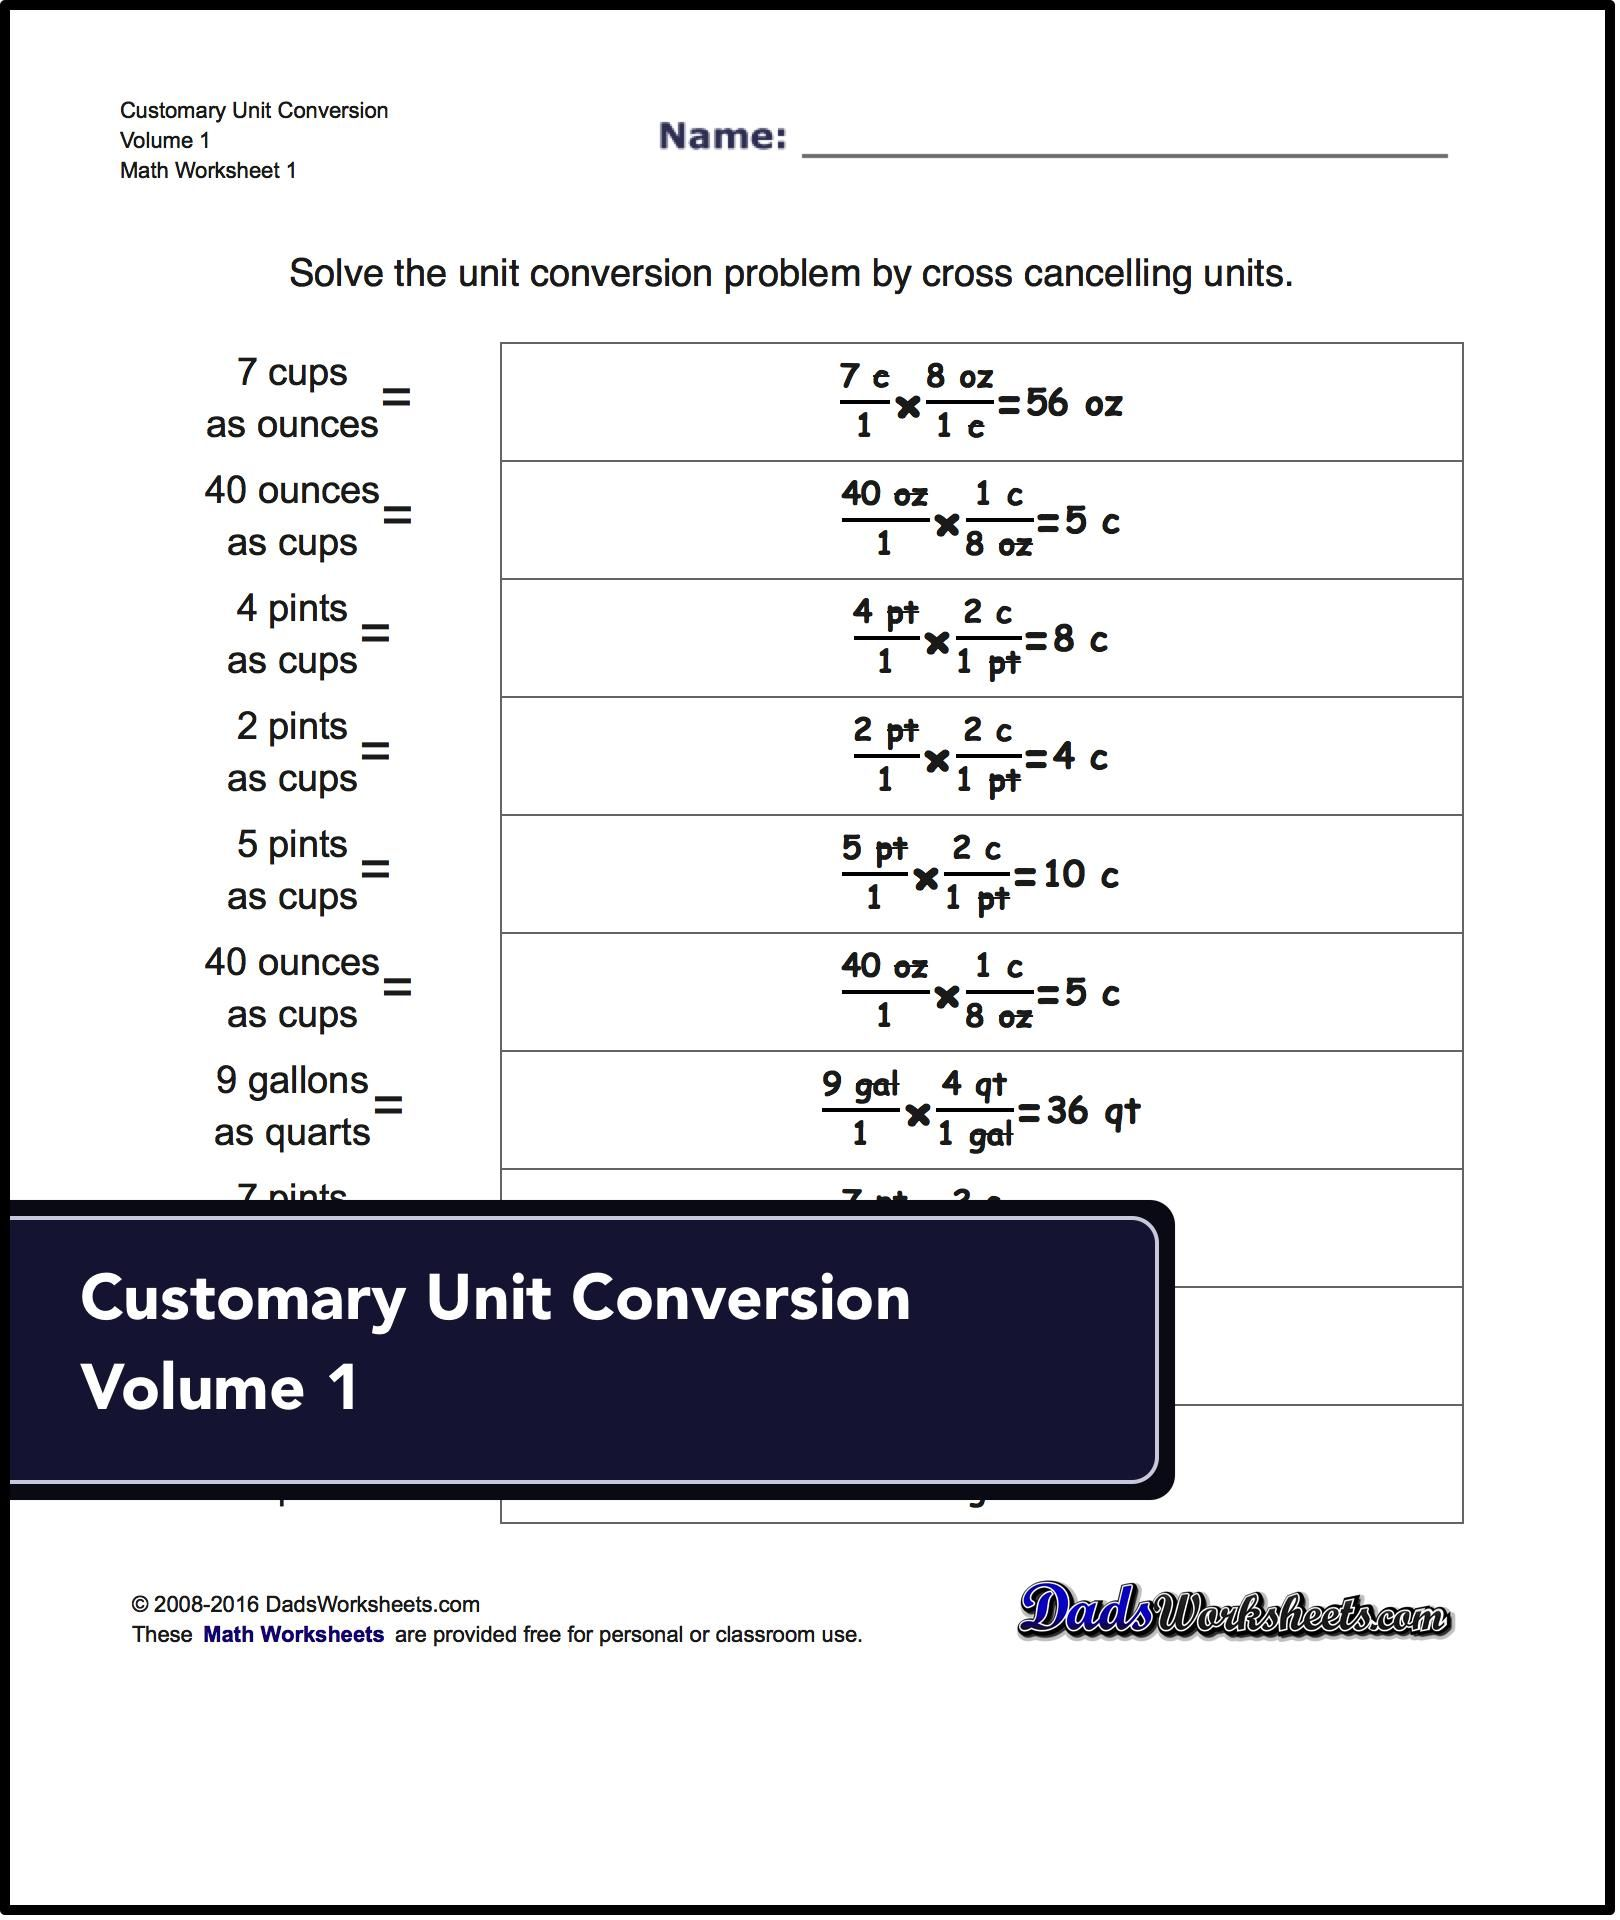 Unit conversion worksheets for converting customary volume ...